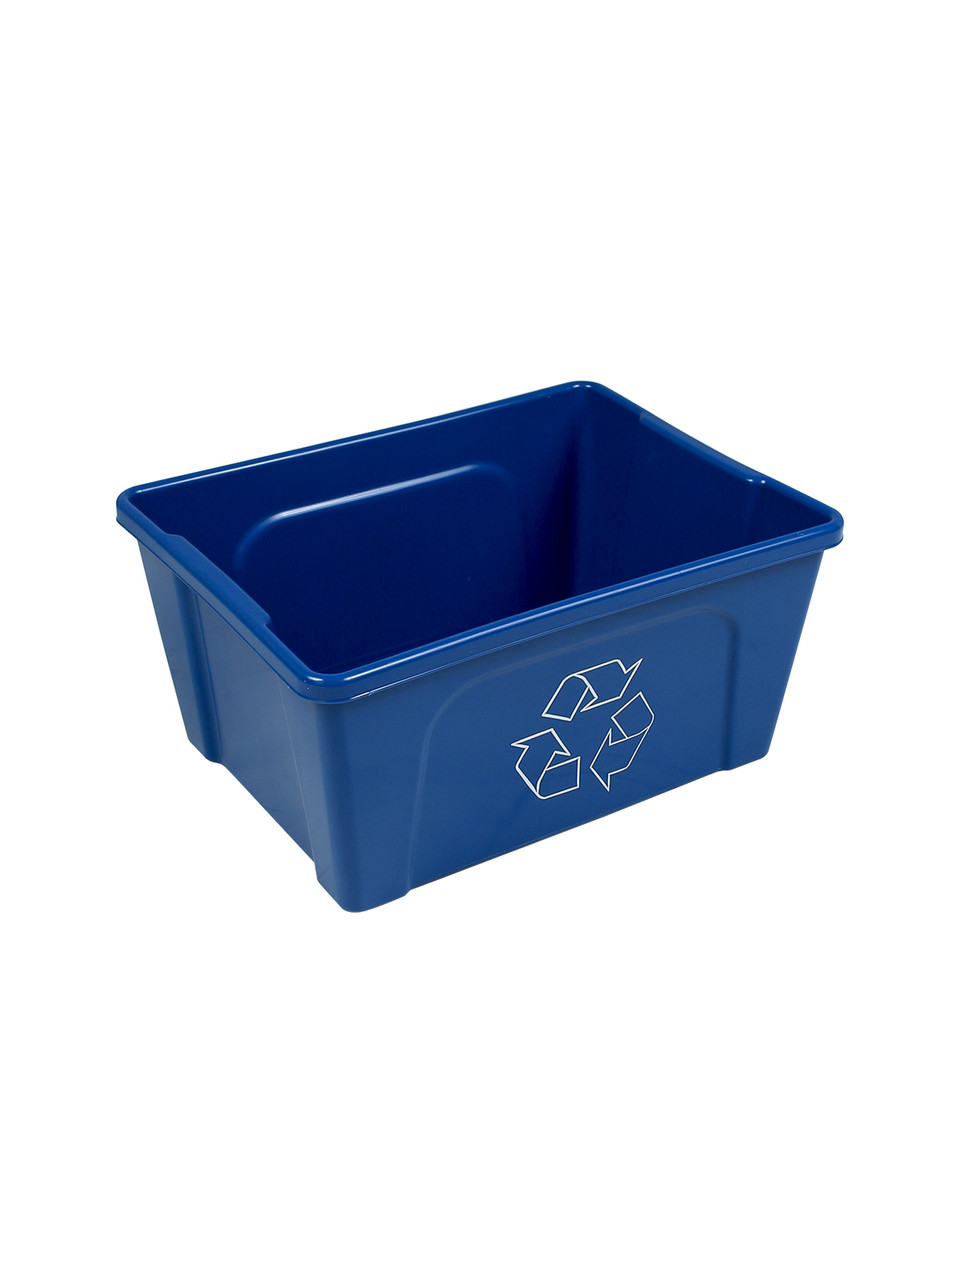 3 Gallon Deskside Office Recycling Container BC1001-01ML